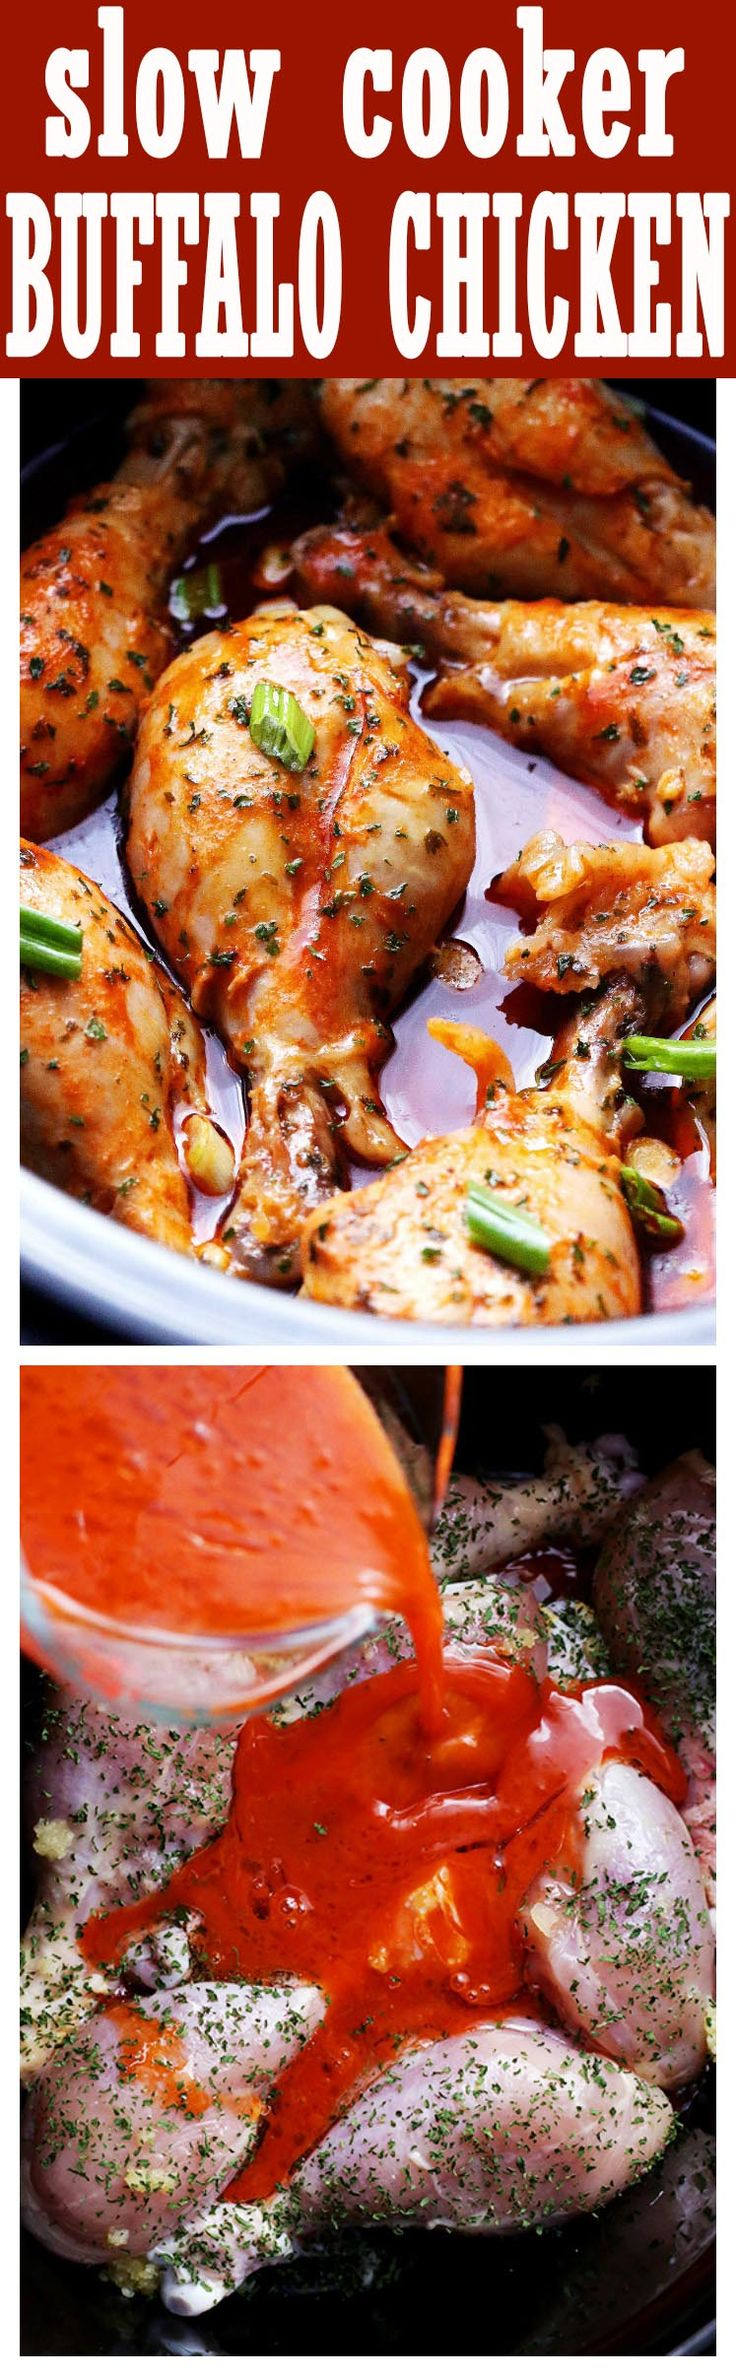 Slow Cooker Buffalo Chicken - Slow cooked, spicy and delicious Buffalo Chicken drumsticks.